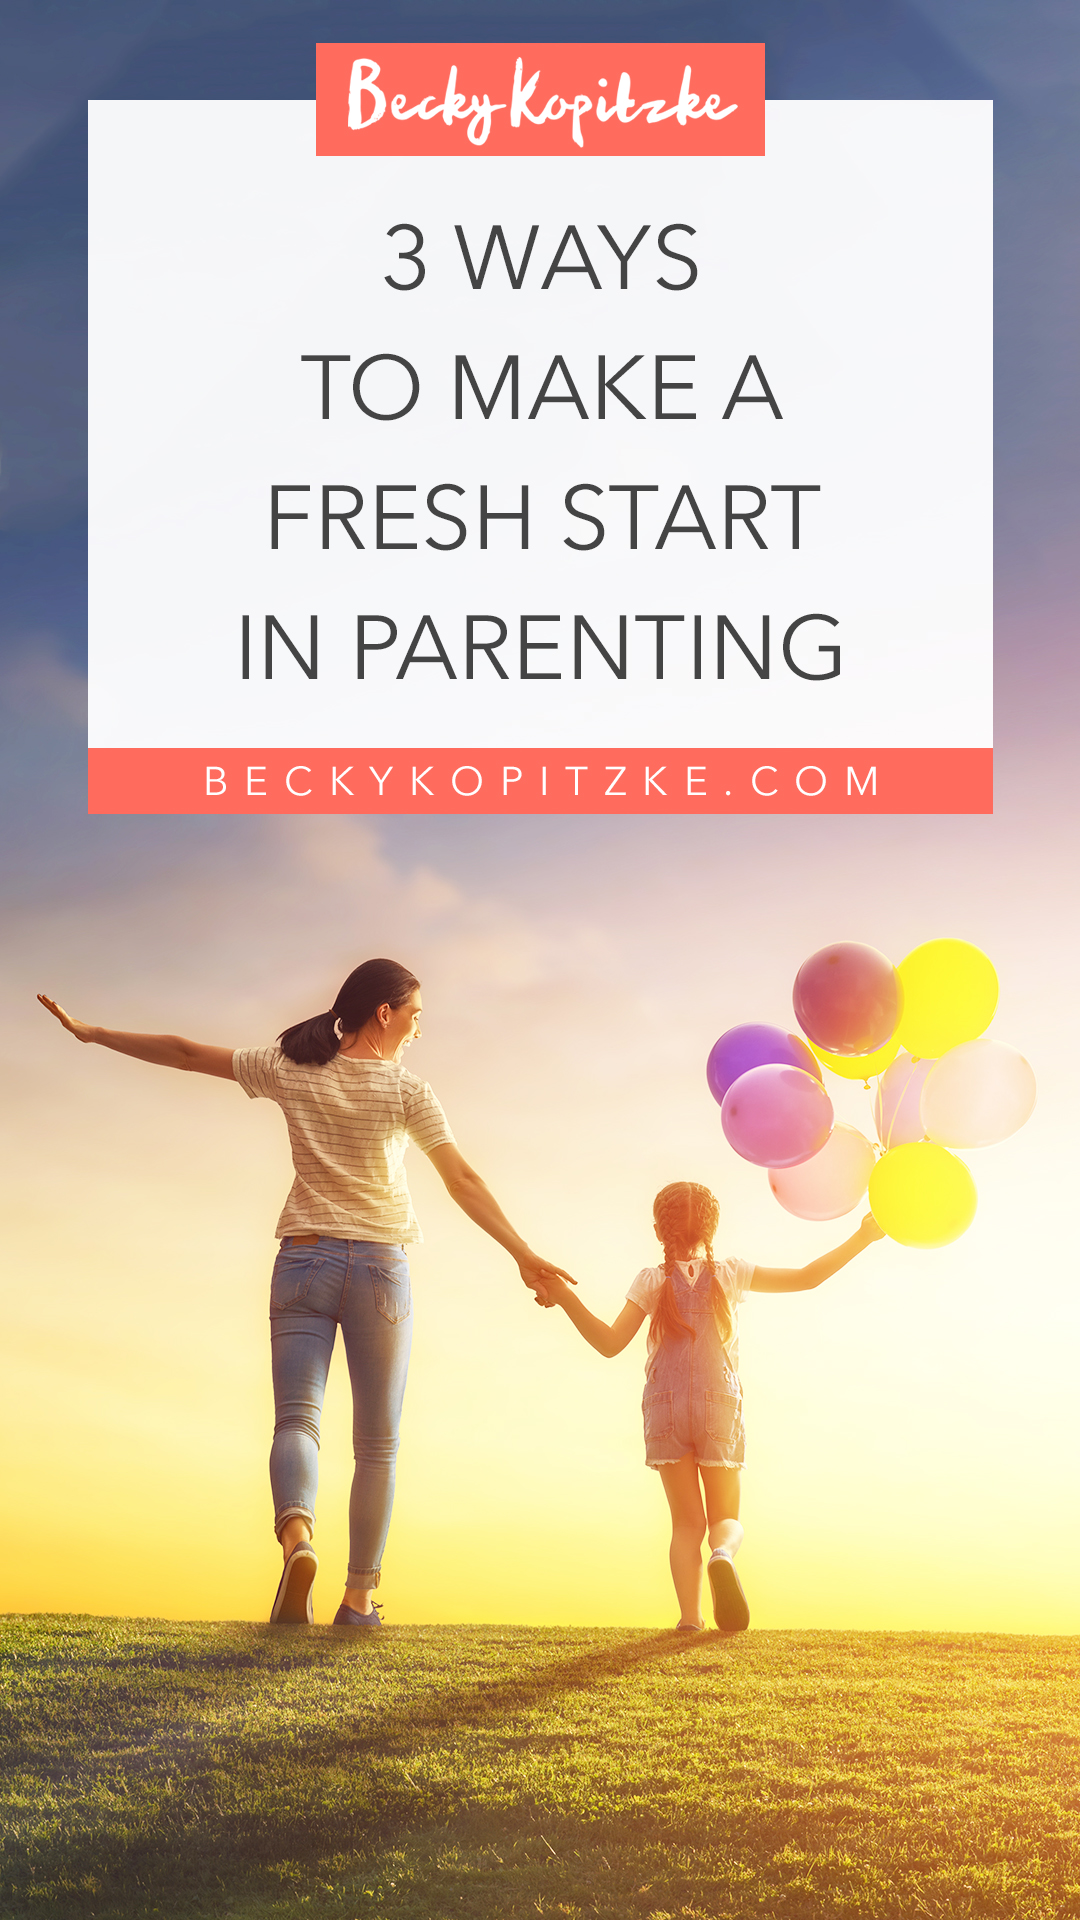 Some days we all need a do-over. And then there are those days when we feel like we need a do-over for the entire year. Here are three ways to make a fresh start in parenting. Encouragement for parents in all stages!